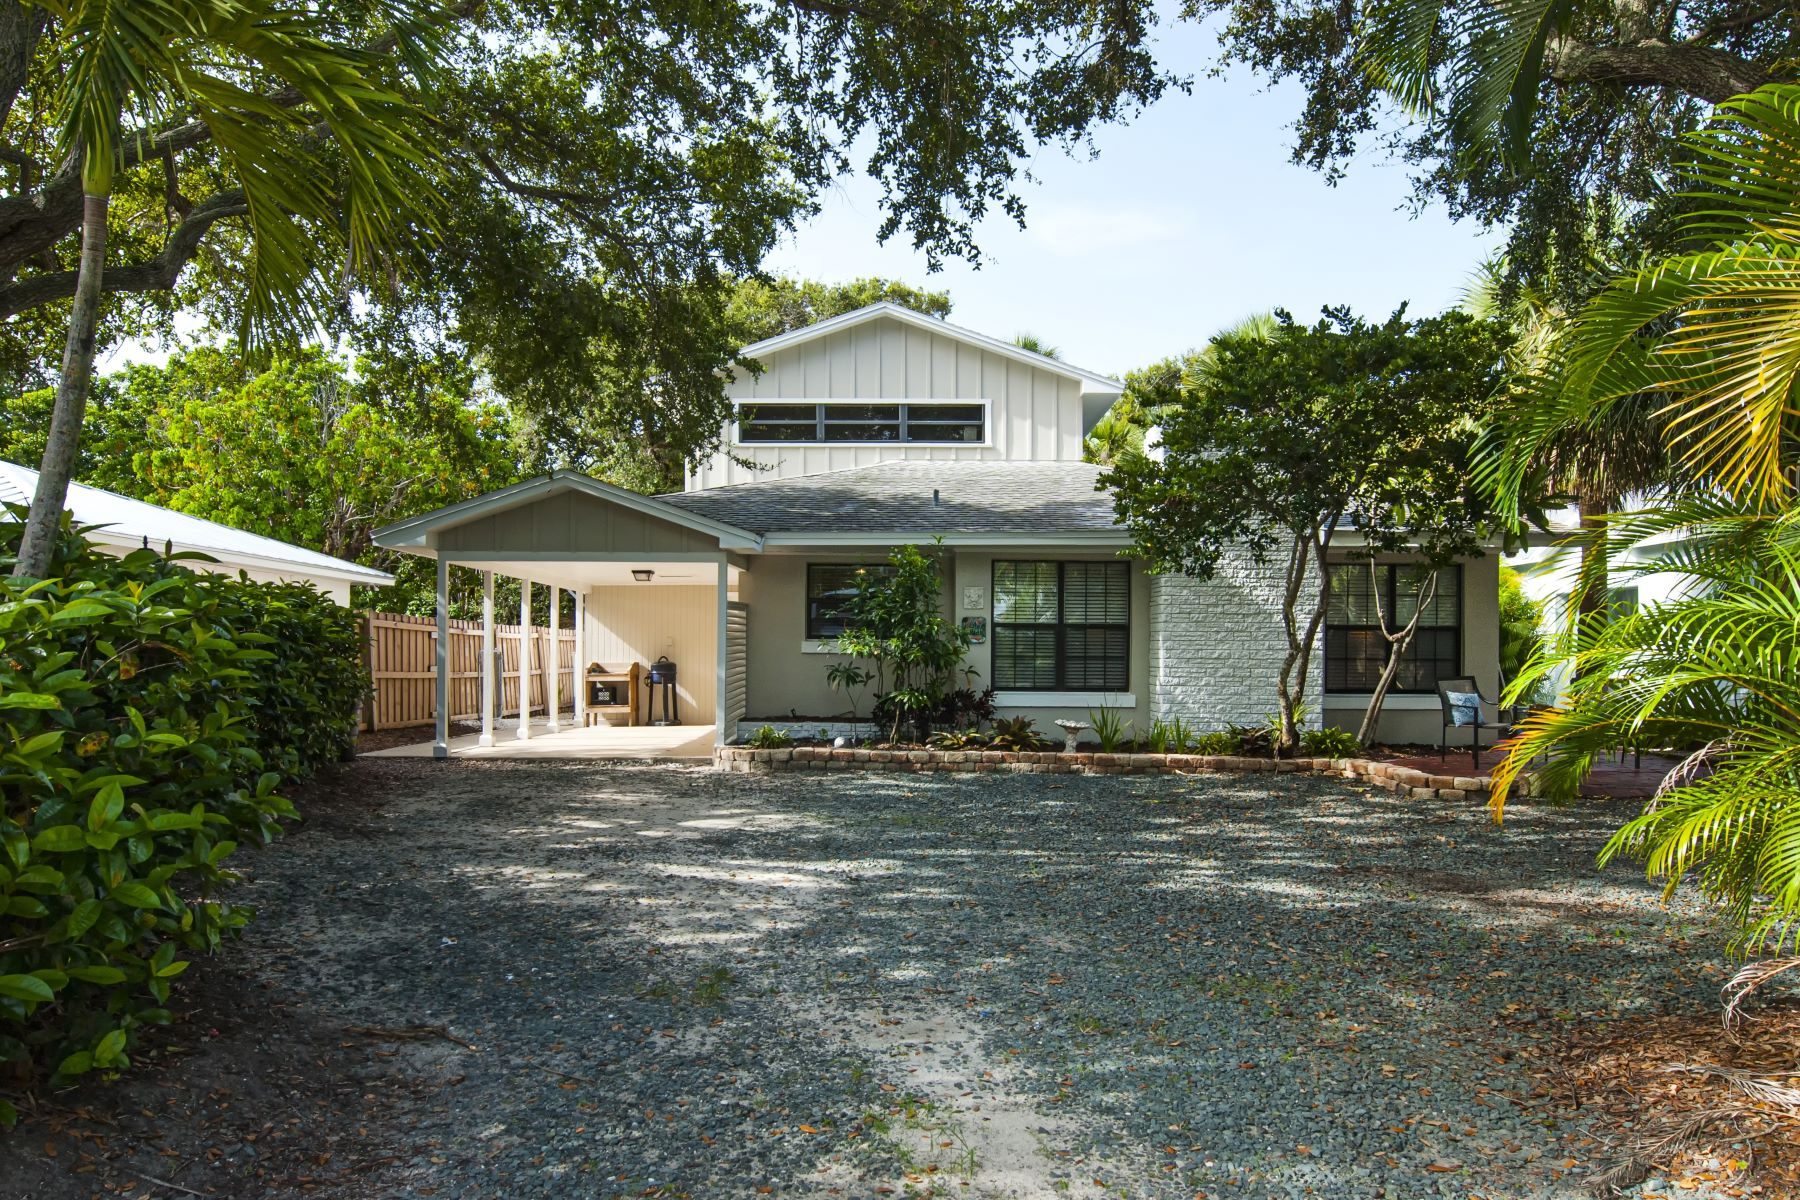 Single Family Homes for Sale at 754 Camelia Lane, Vero Beach, FL 754 Camelia Lane Vero Beach, Florida 32963 United States